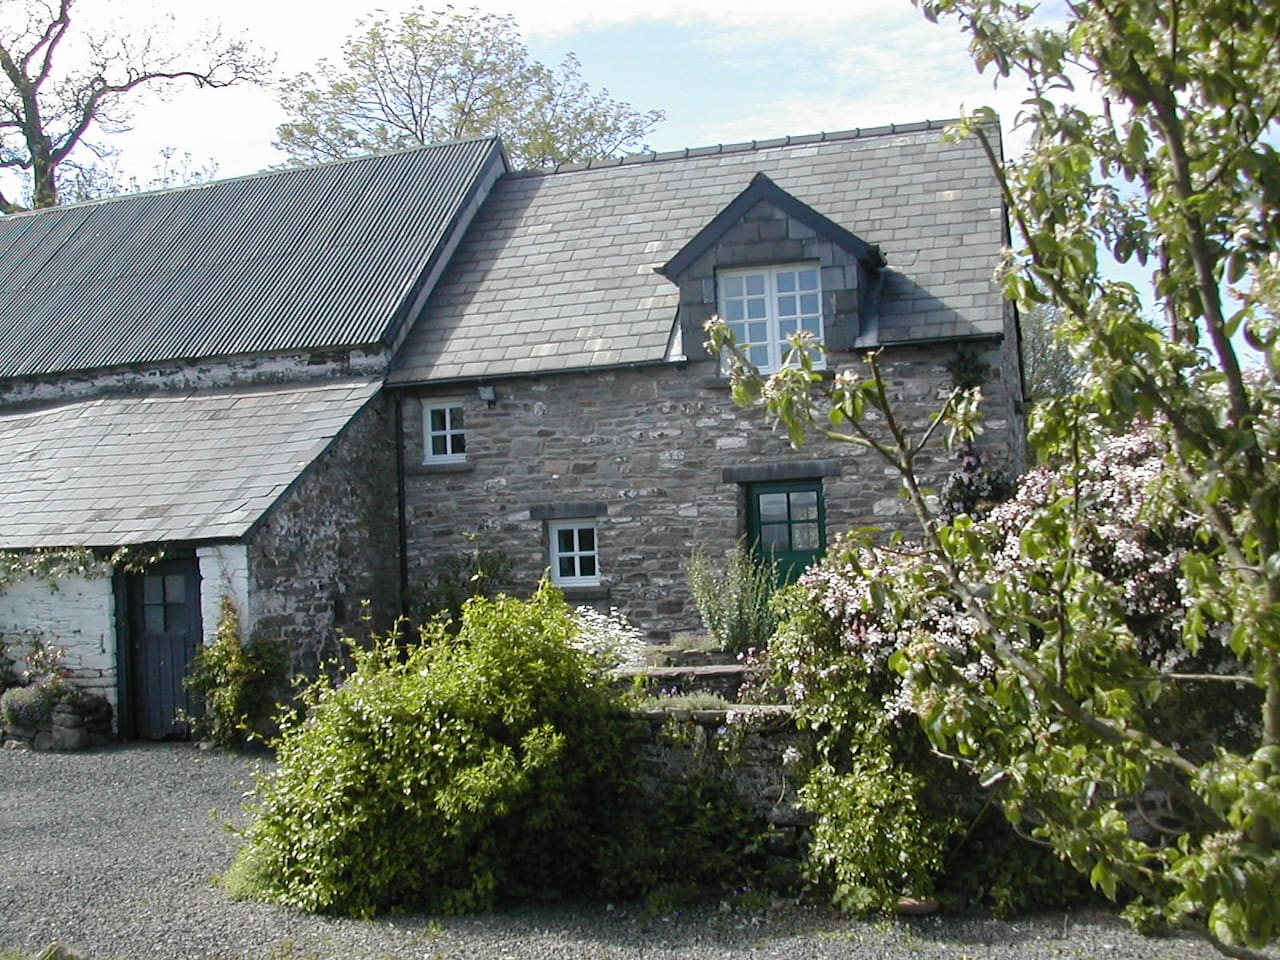 Damson Cottage at Alltybrain Farm Cottages